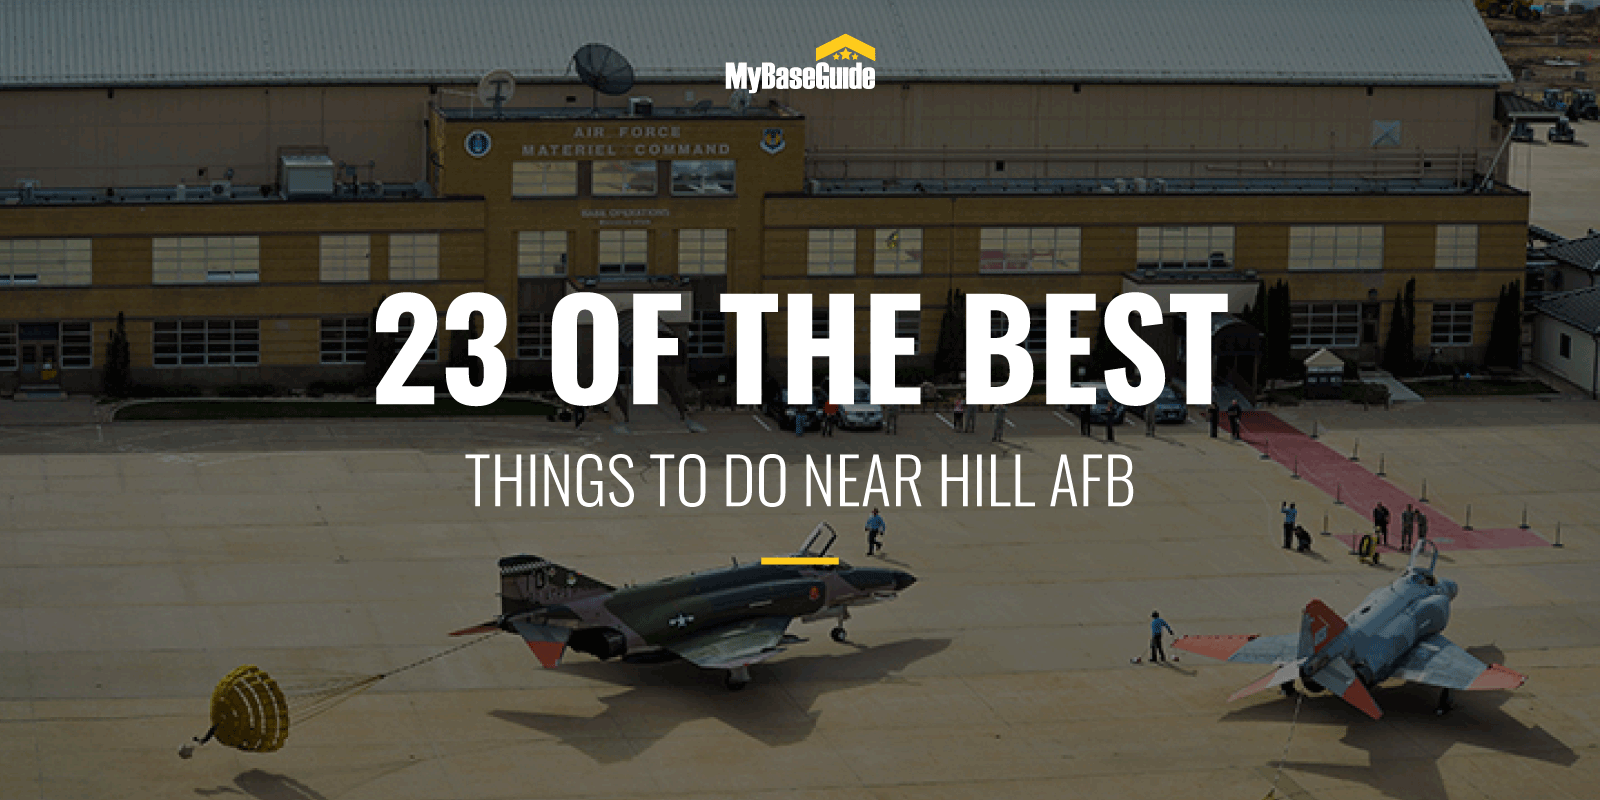 23 Of the Best Things to Do Near Hill AFB